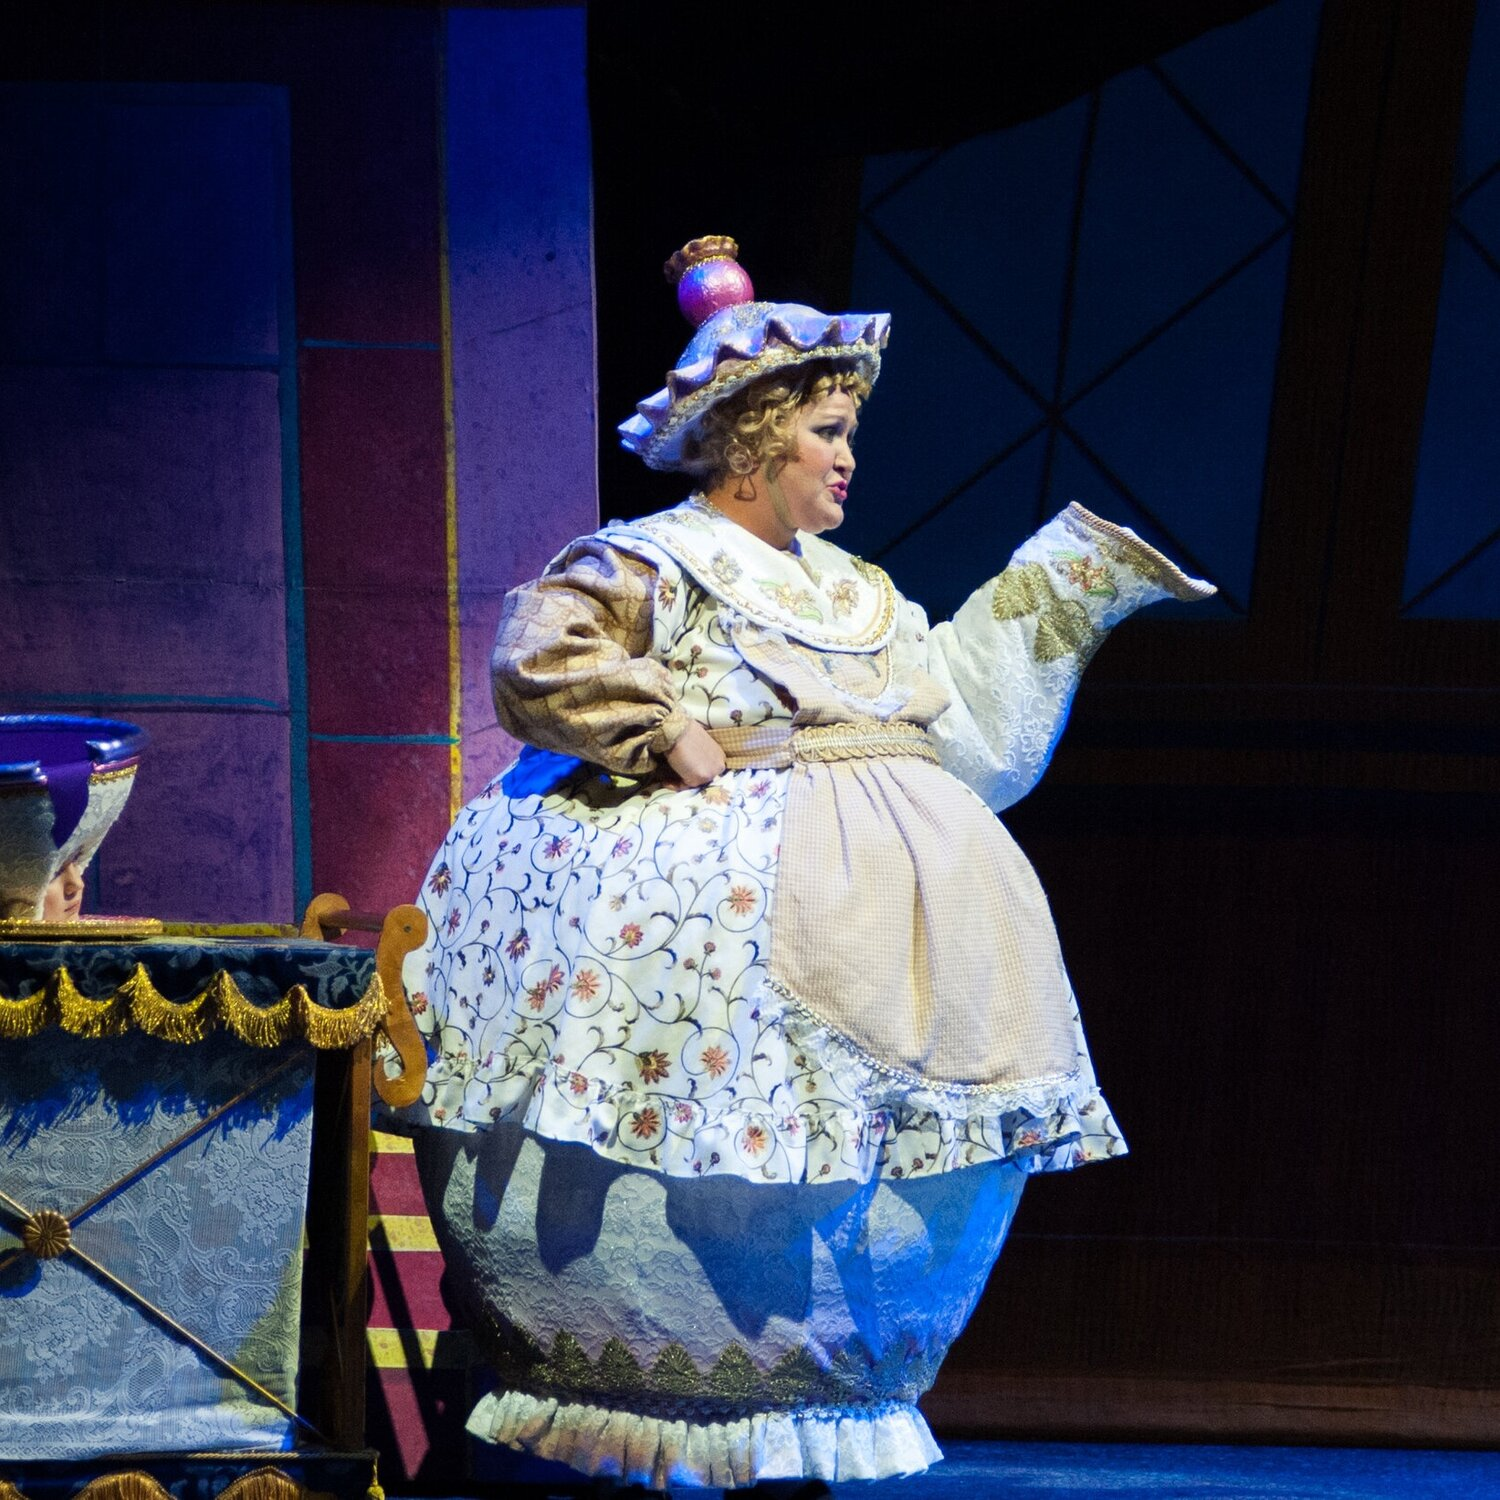 Mrs. Pott's HardHat- Beauty and the Beast- Music Theatre Wichita 2016  Costume Design by Tiia Torchia Lager. All designs by the seasonal staff of MTW. Photos courtesy of Christopher Clark and John Fritchman.